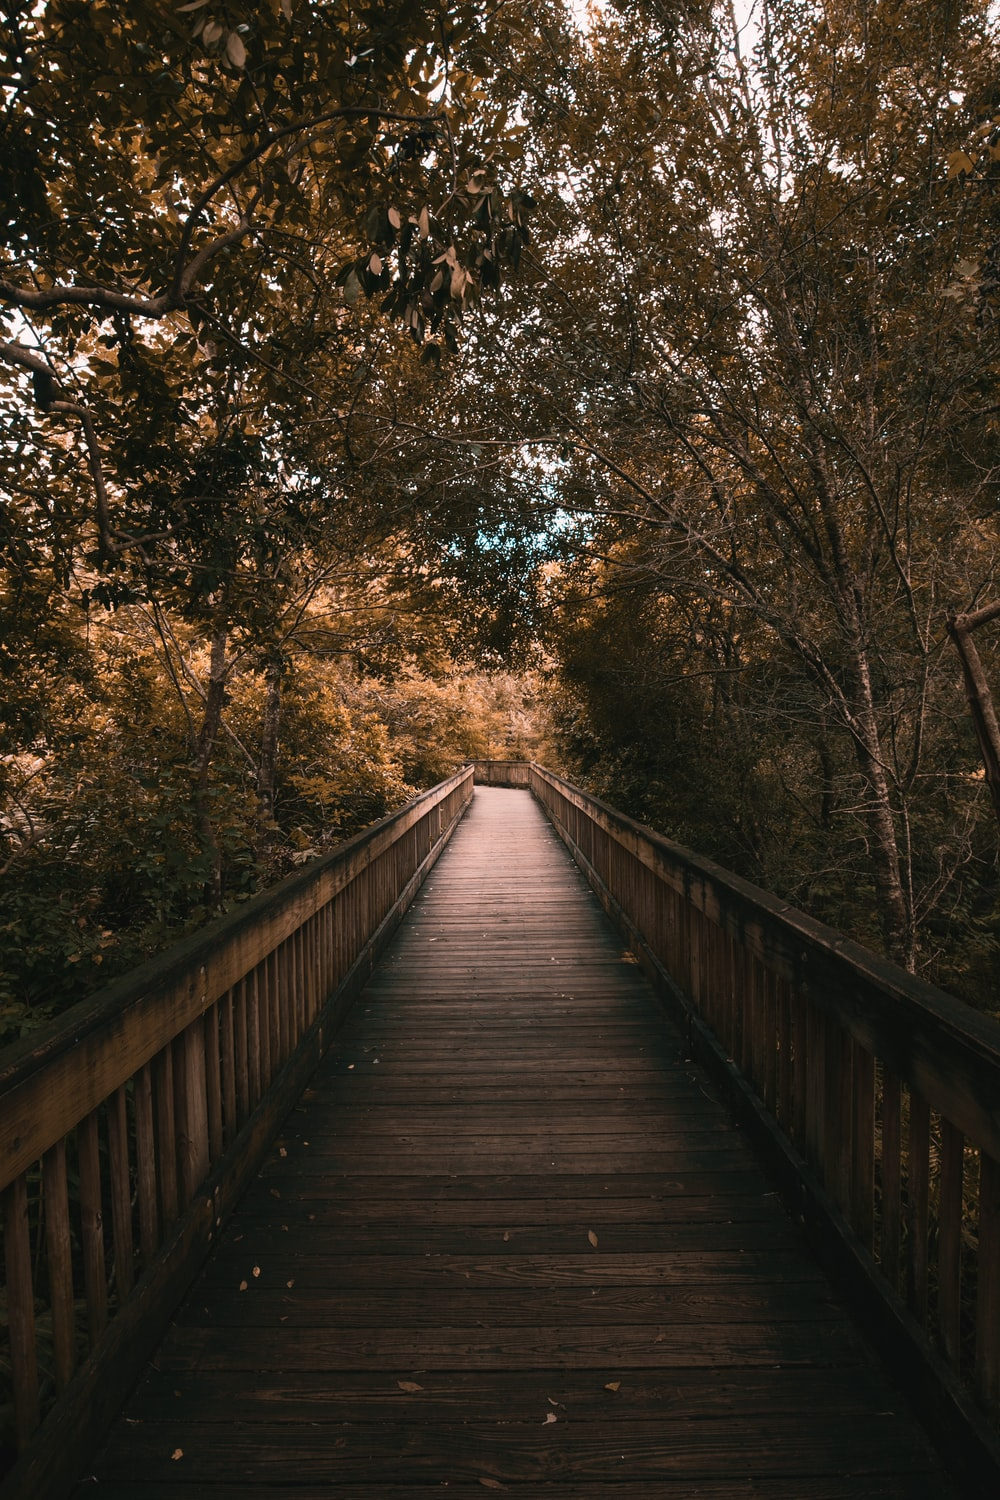 wooden bridge surrounded by trees